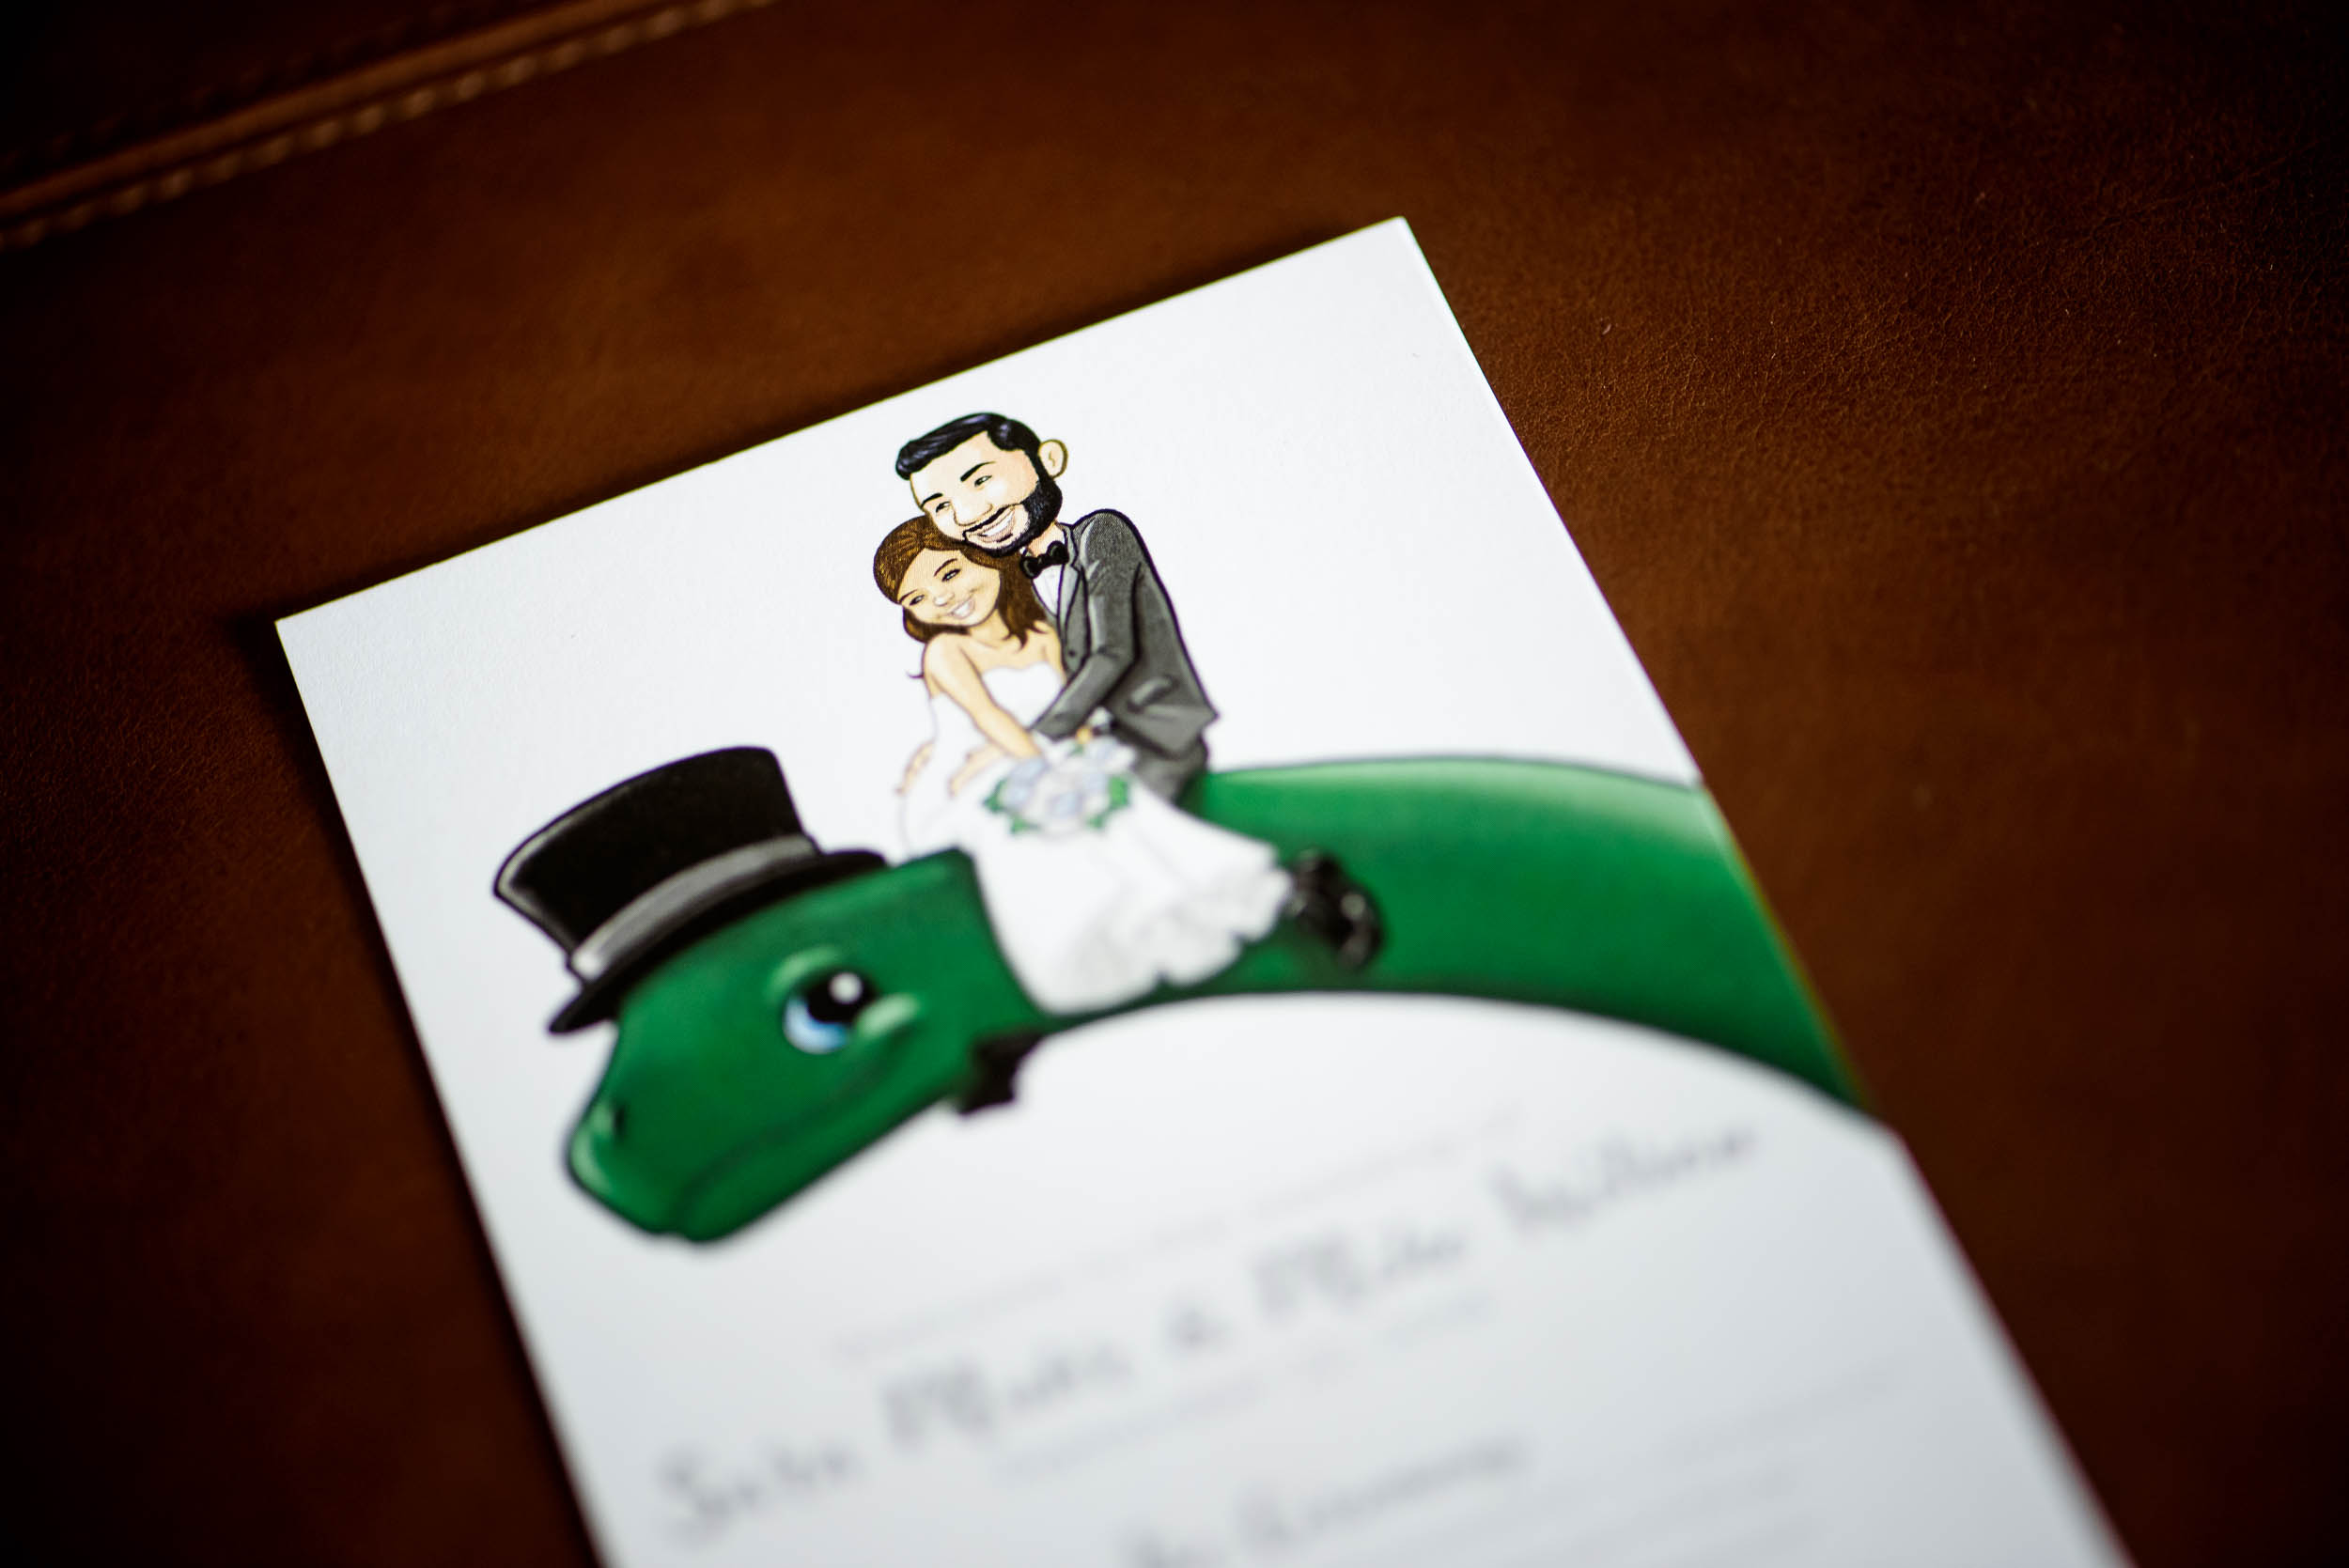 Fun wedding stationery design for Grand Geneve Resort Fall Chicago Wedding captured by J. Brown Photography. Visit jbrownphotography.com for more wedding inspiration!